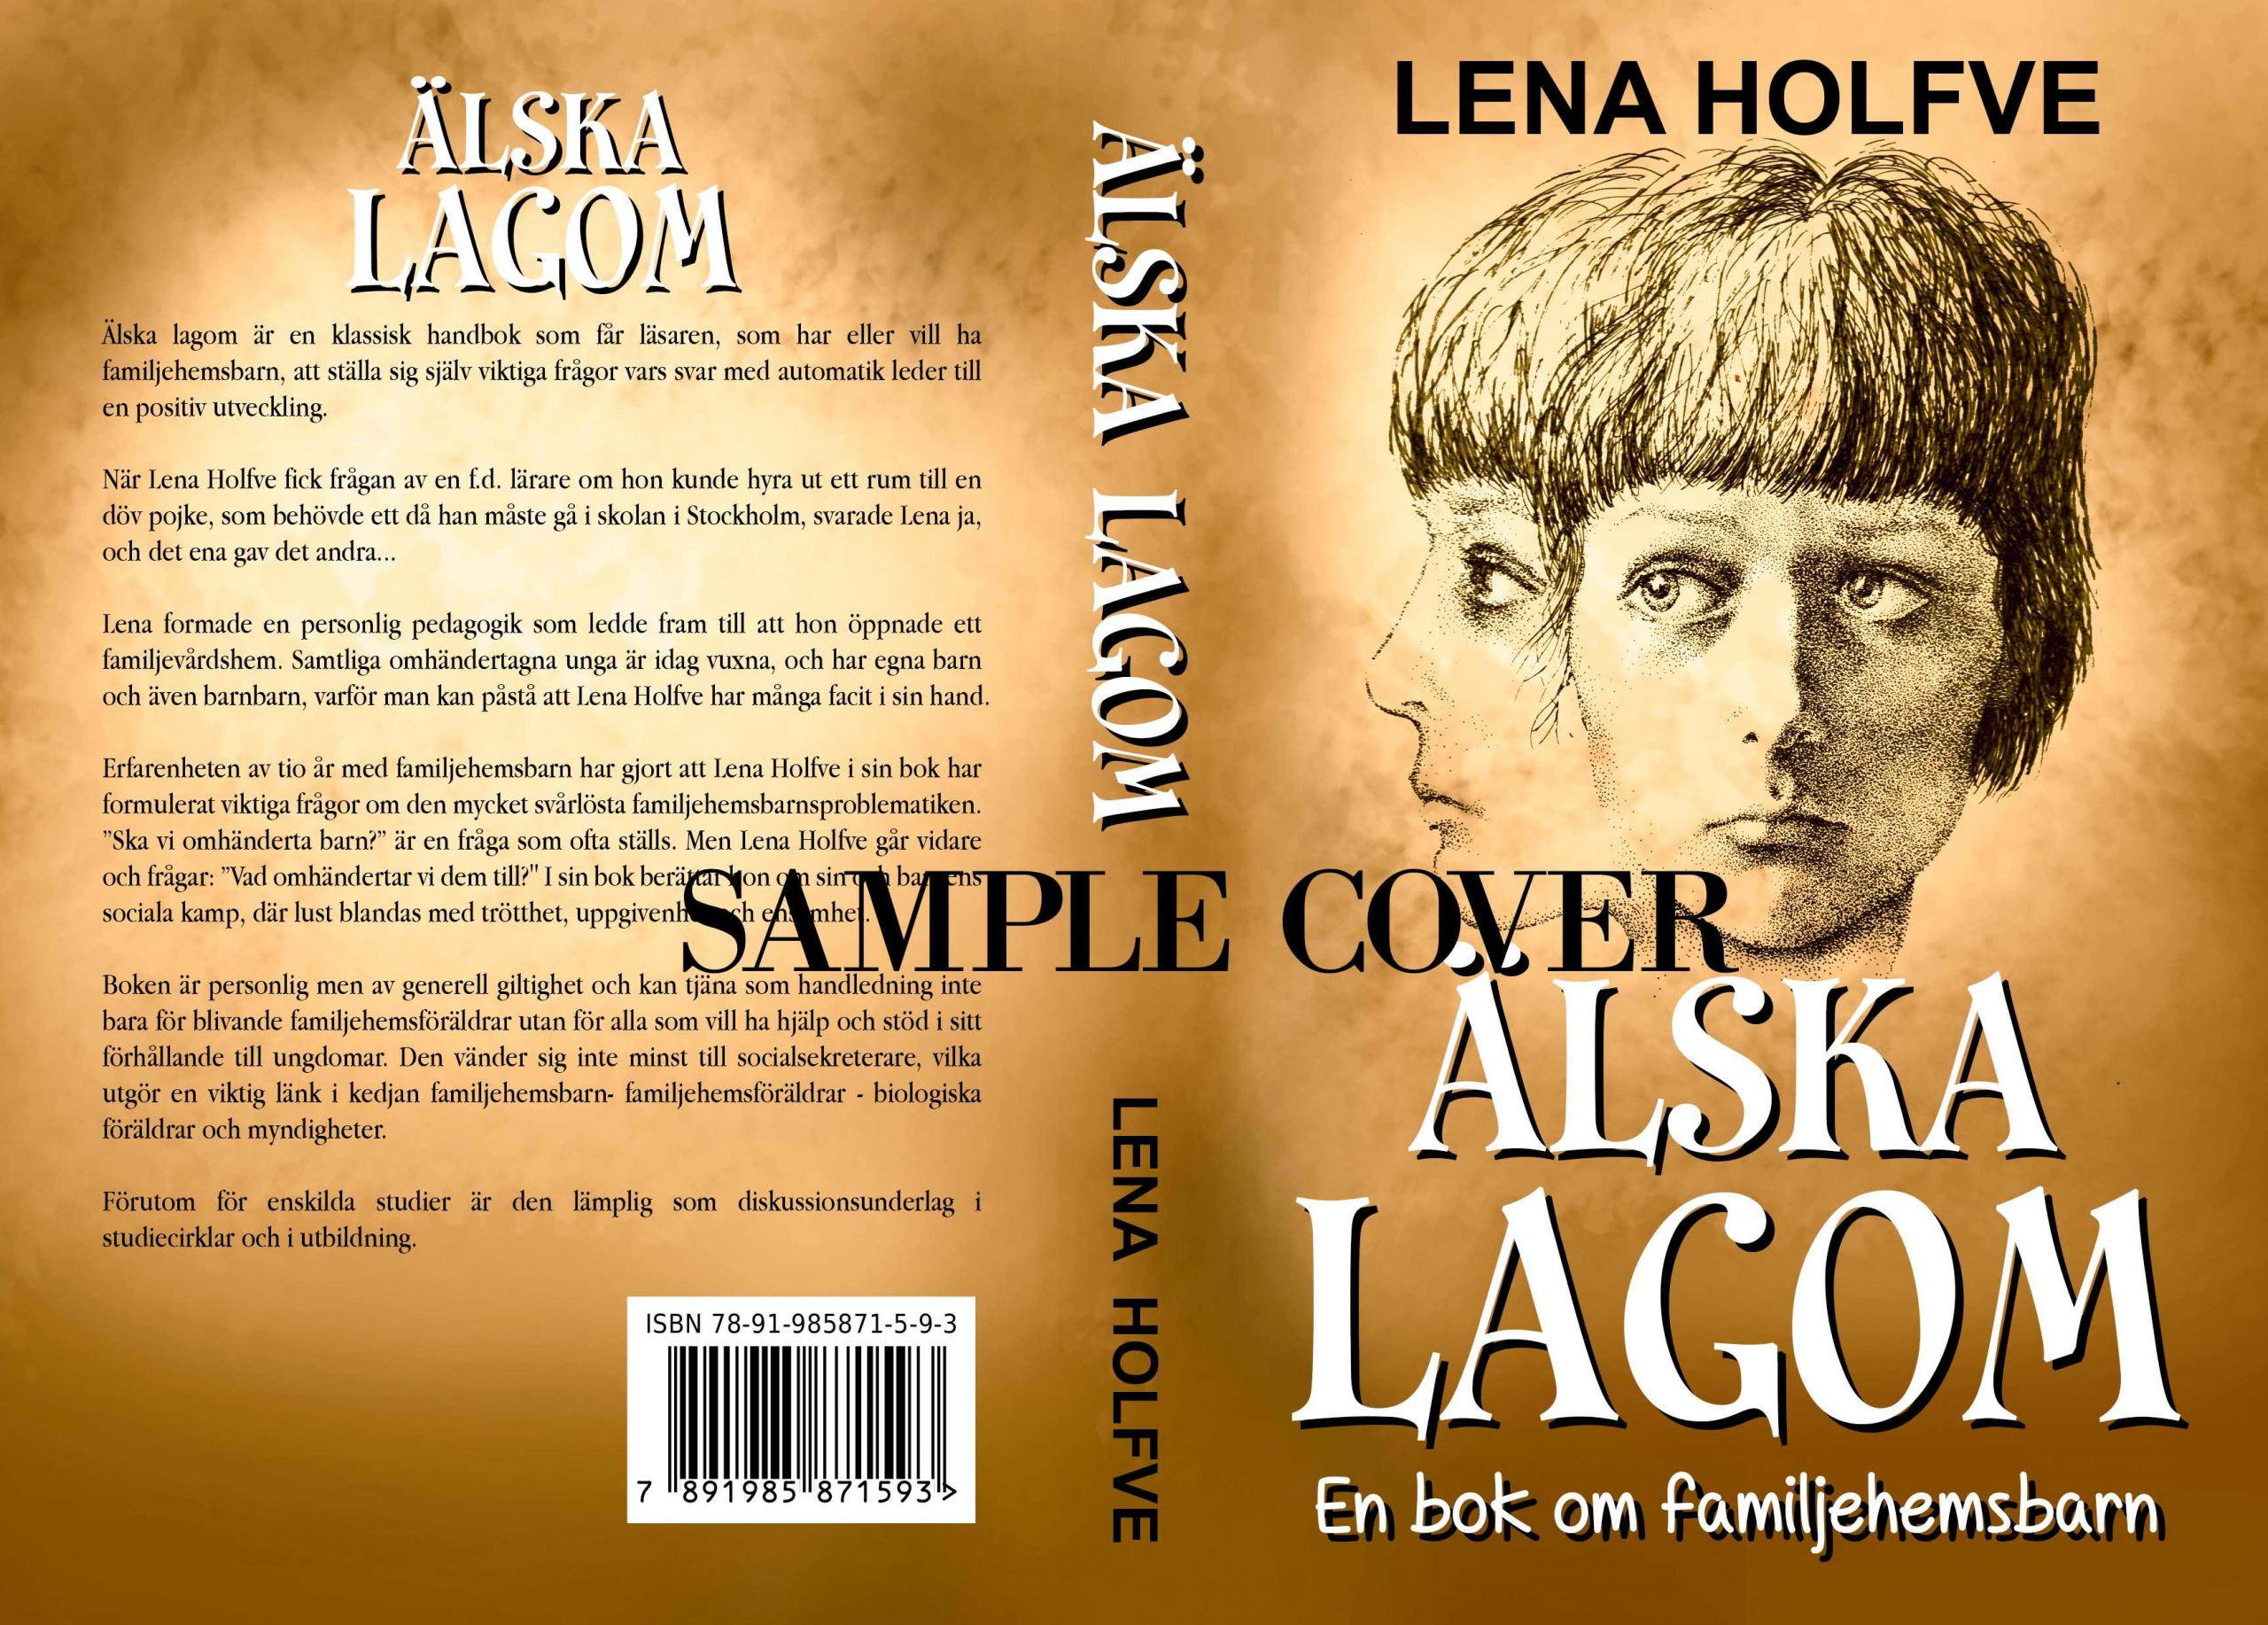 Sample Cover scaled